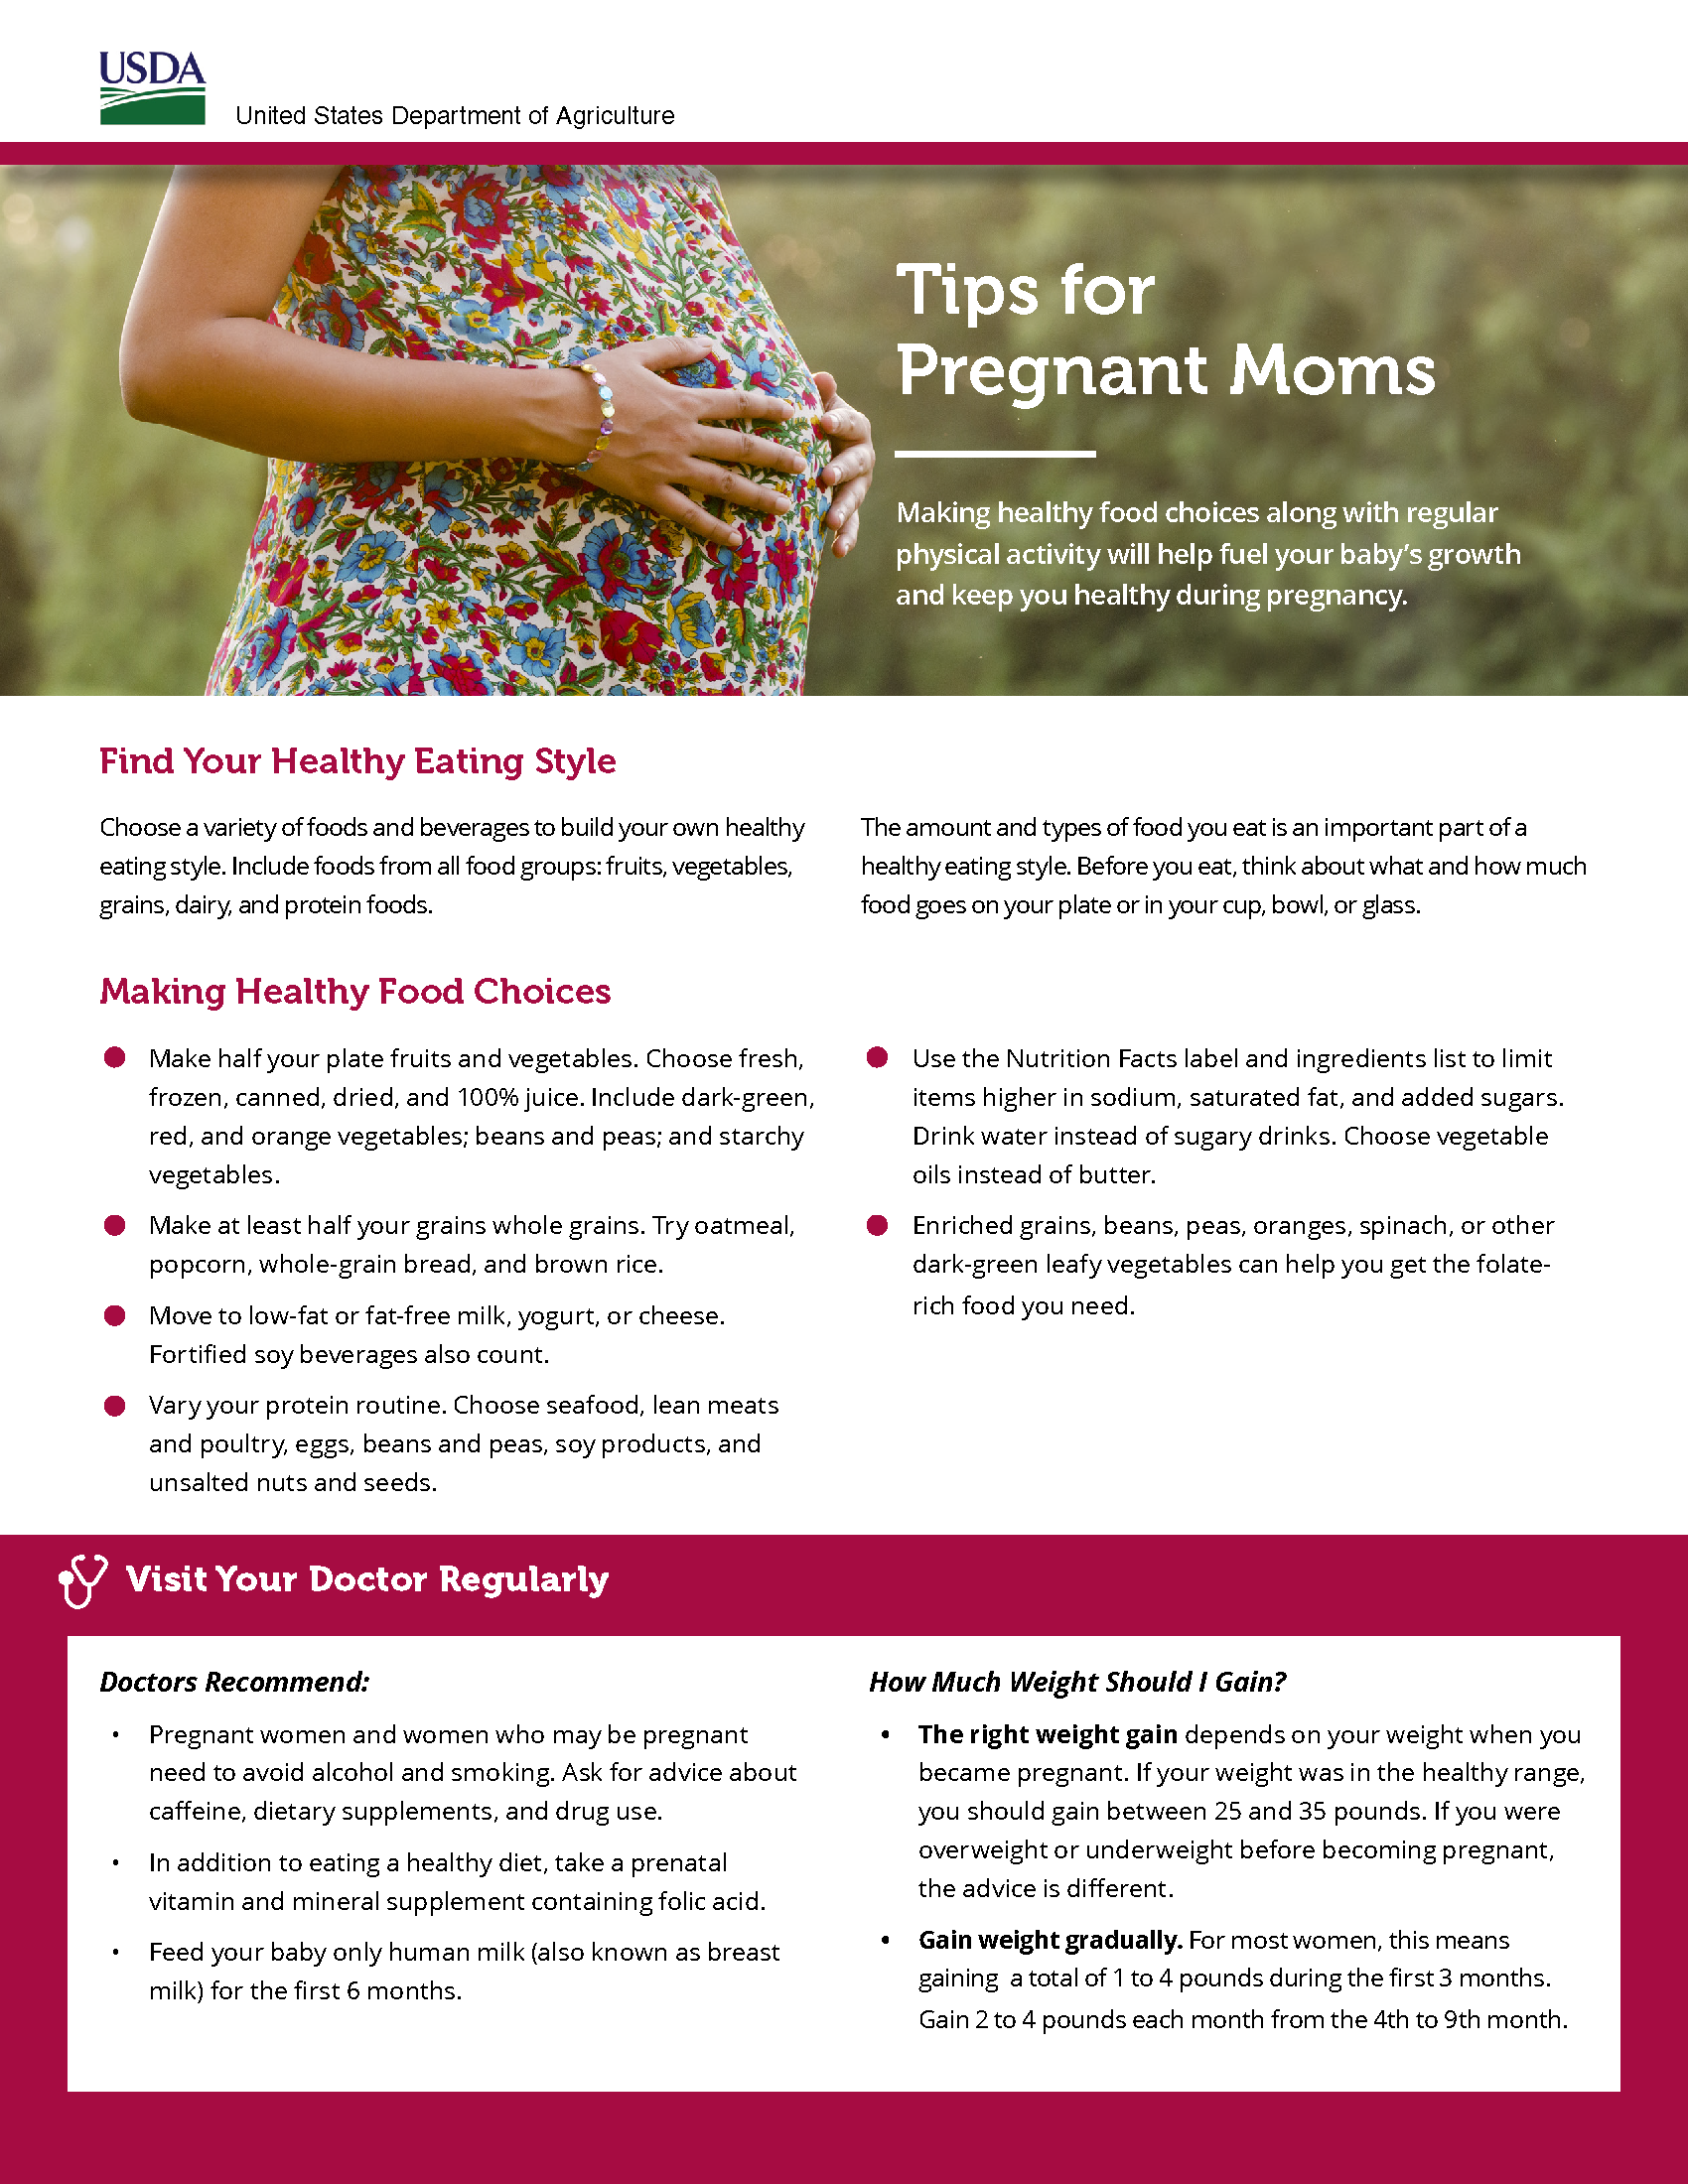 Tips for Pregnant Moms